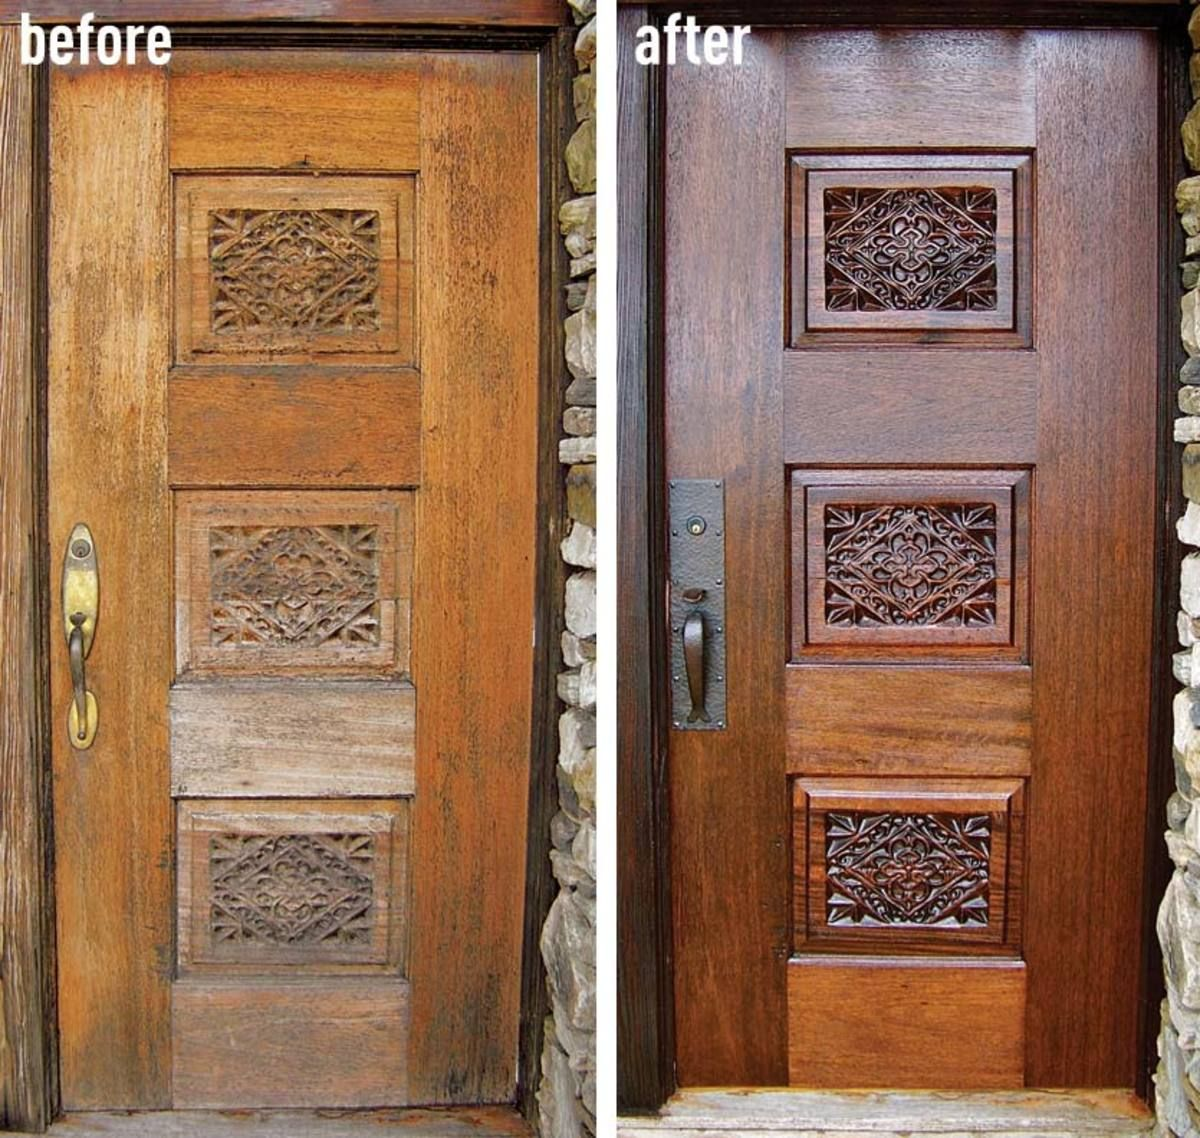 How To Refinish An Entry Door Old Wooden Doors Old Wood Doors